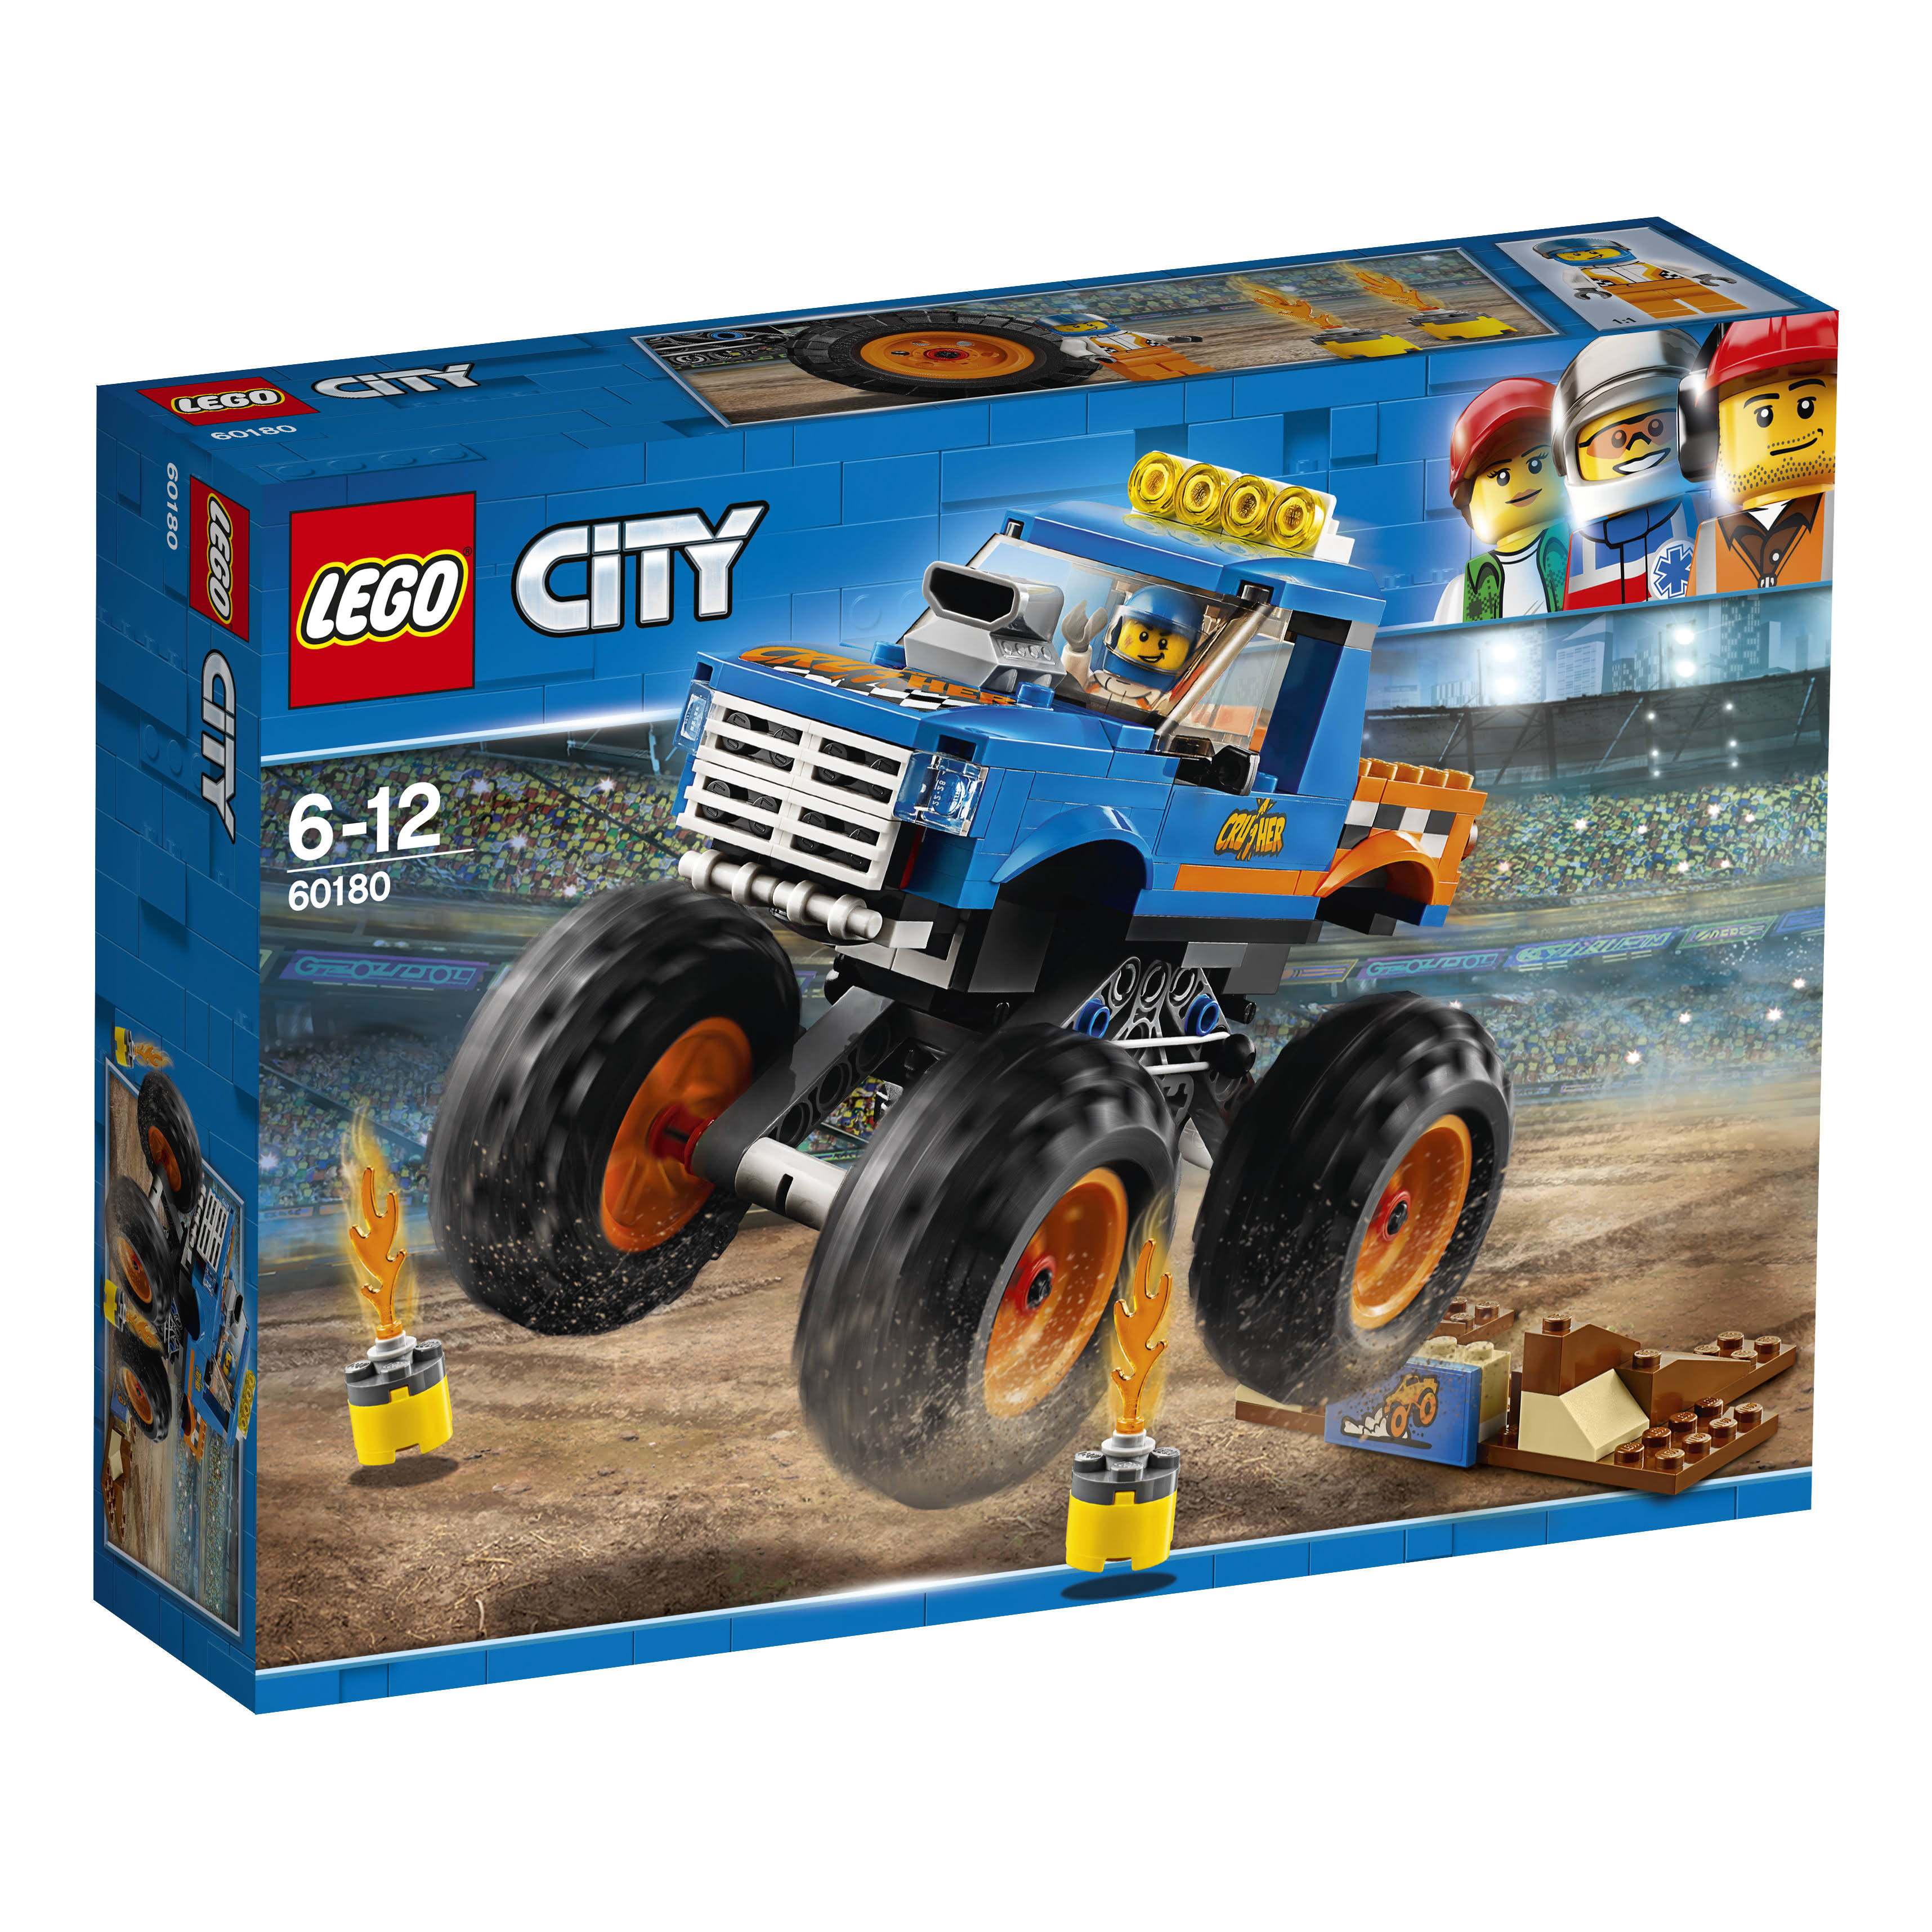 Lego City Monster Truck Building Set